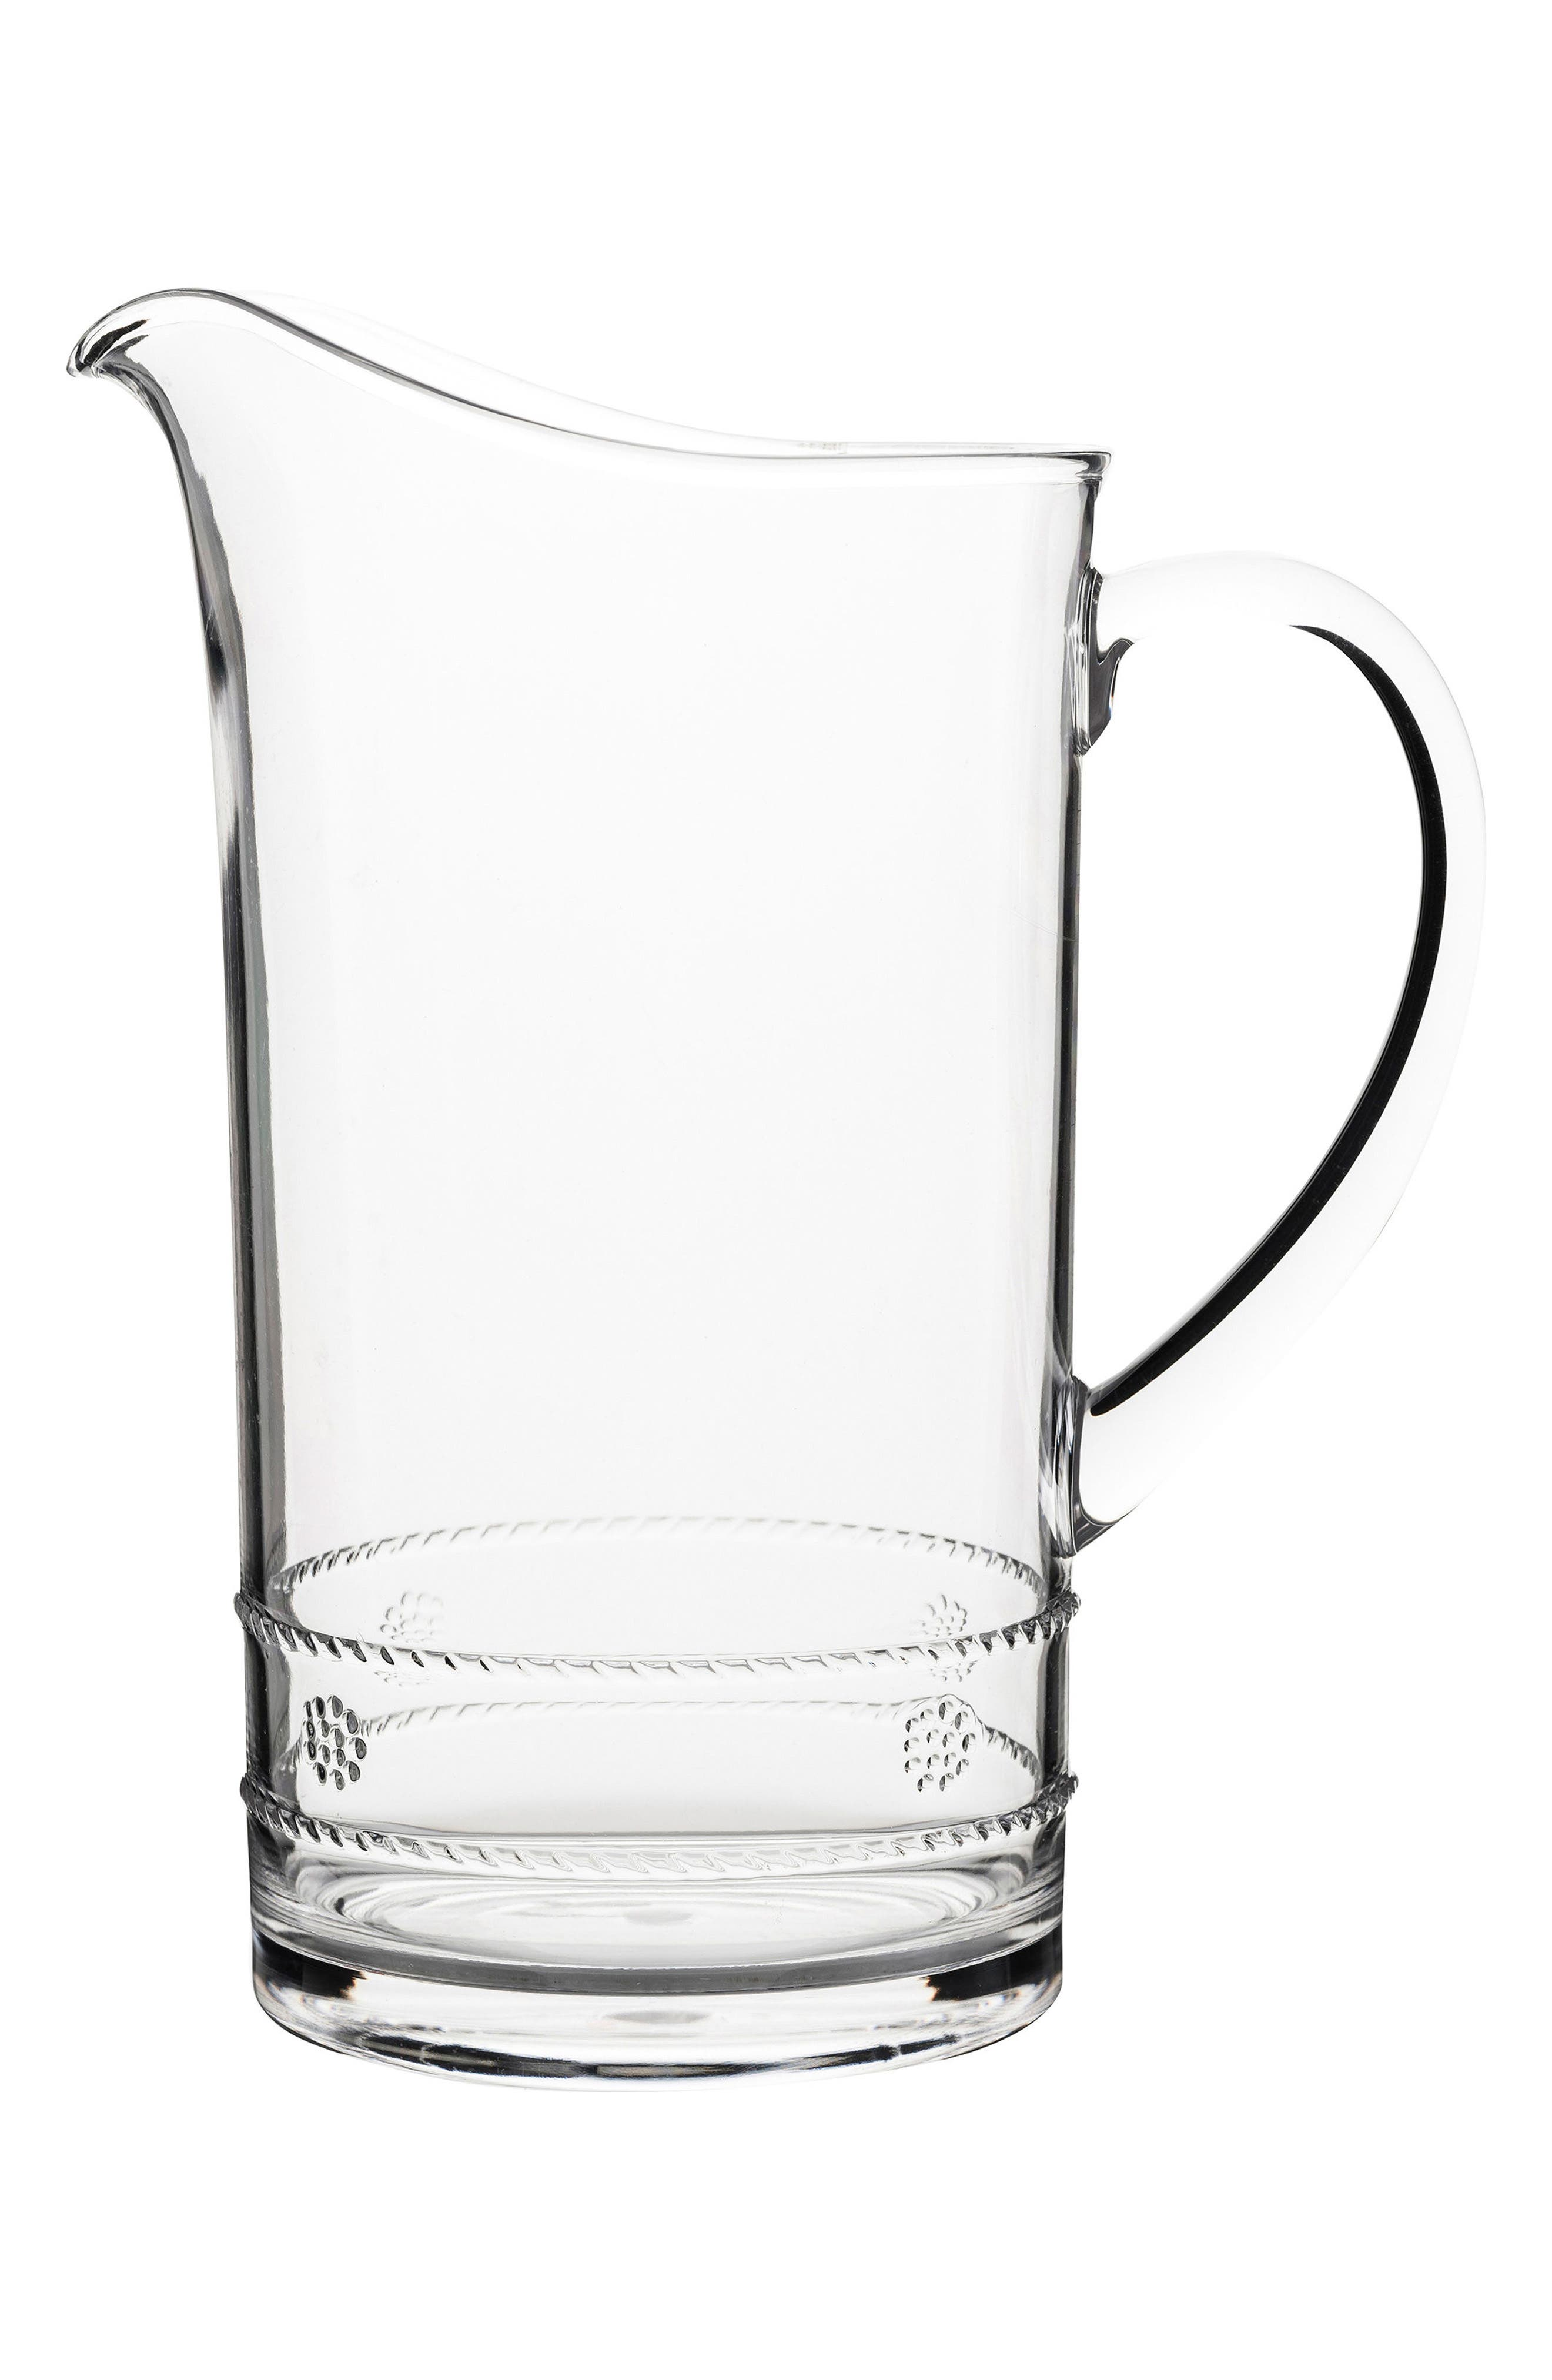 Isabella Acrylic Pitcher,                             Main thumbnail 1, color,                             Clear